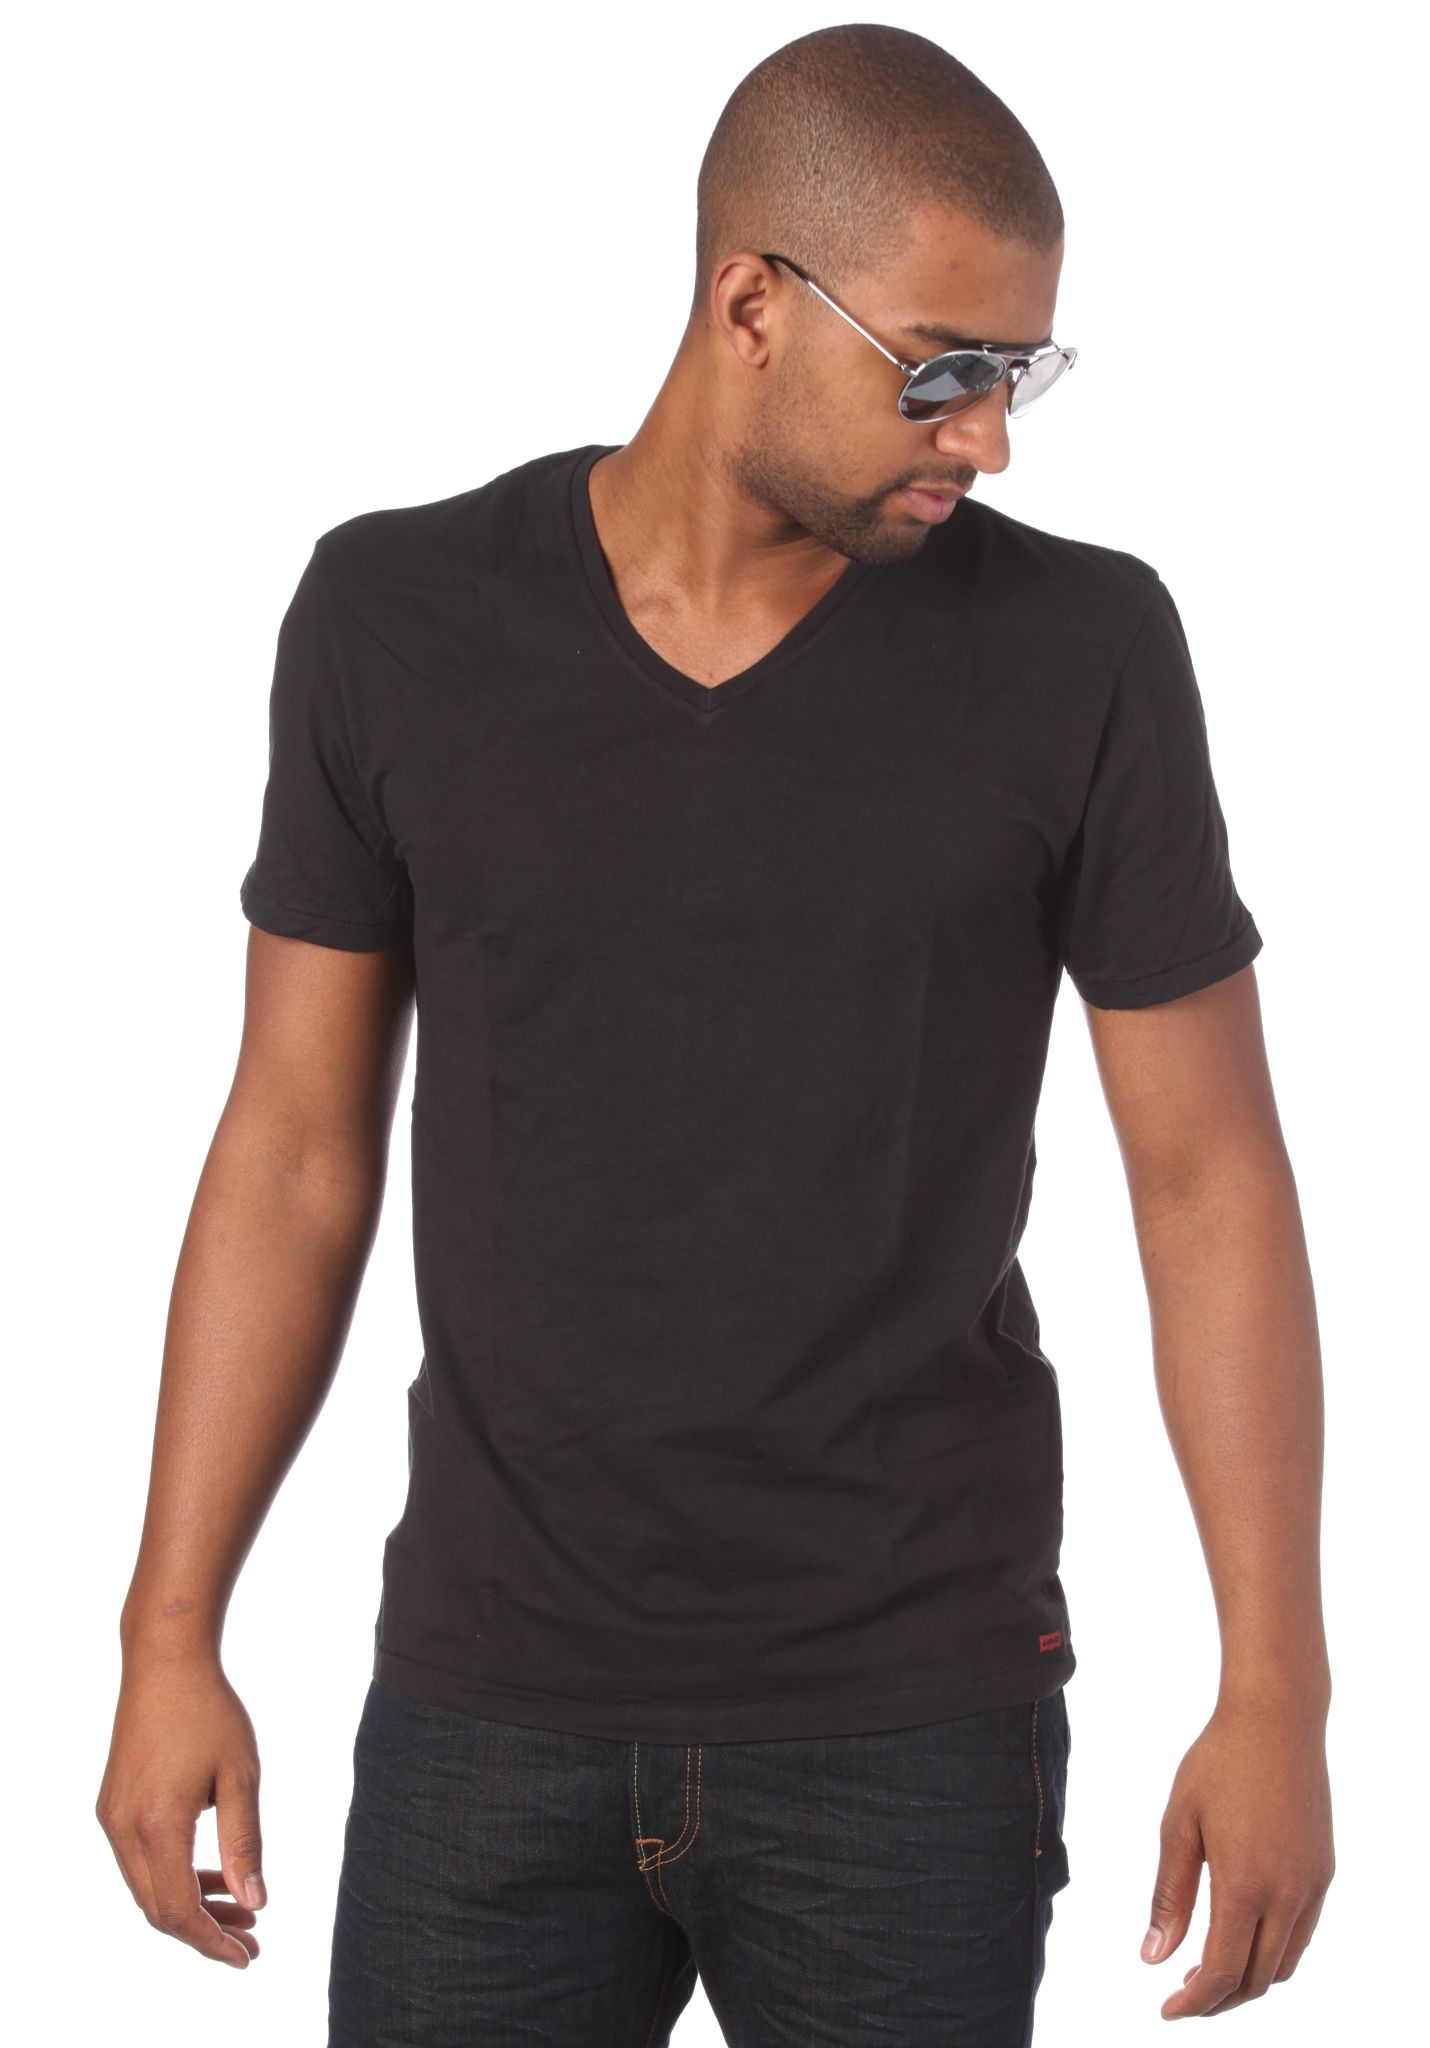 Black t shirts v neck - Black T Shirts V Neck 56